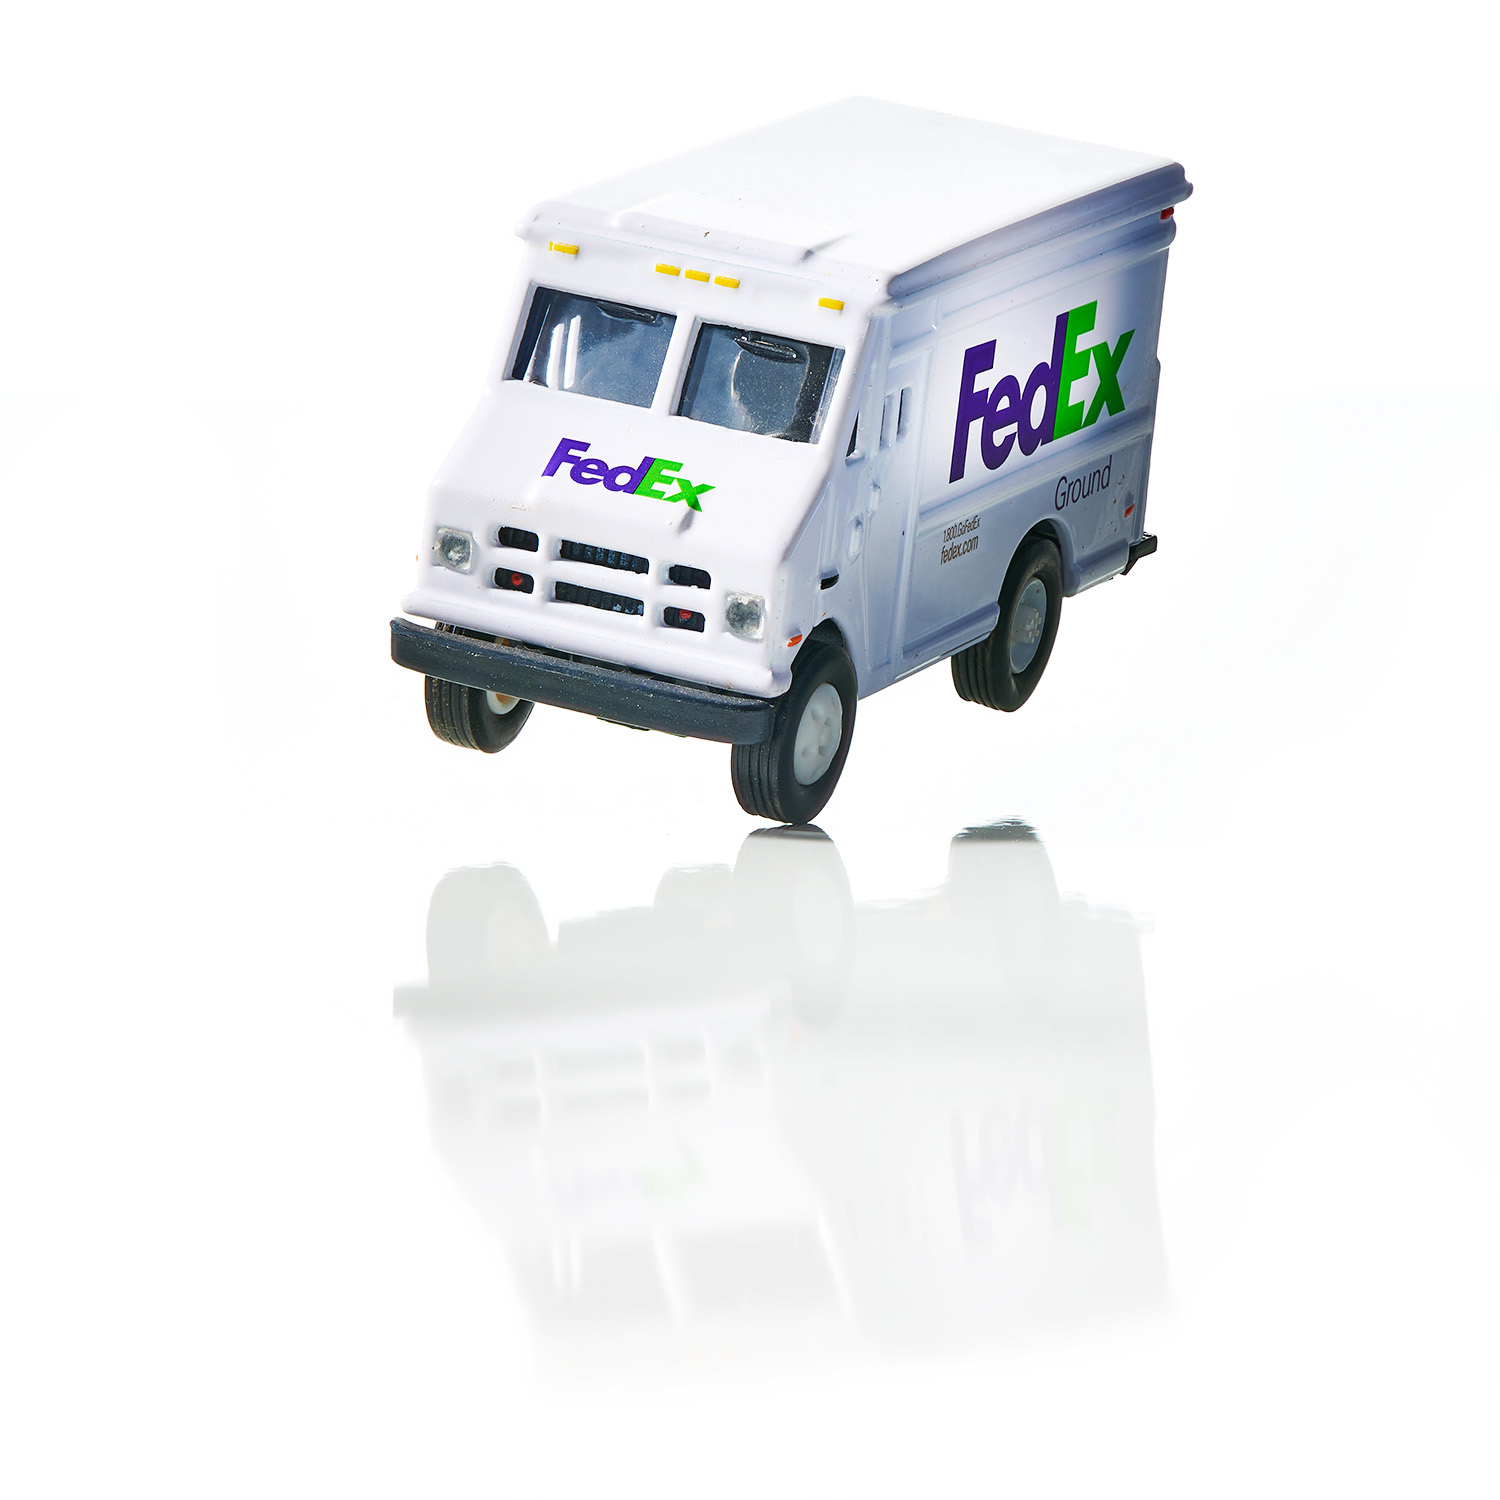 Toy Fedex Truck on White